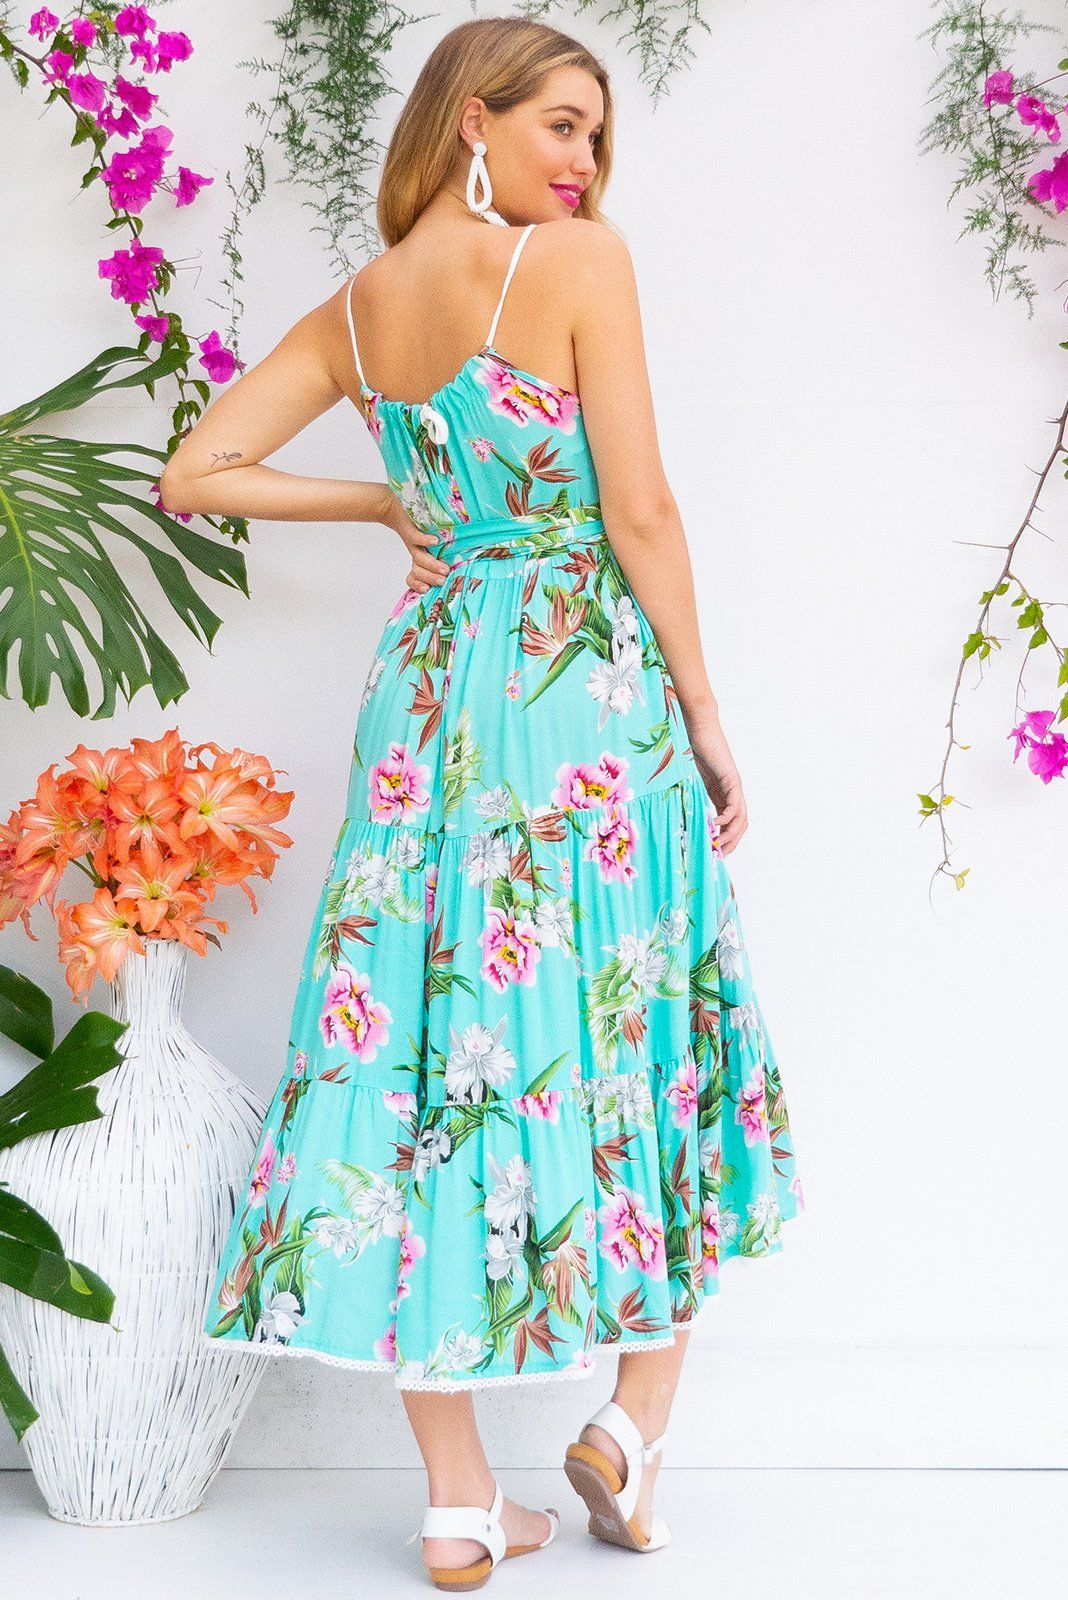 3f019fb947b1 Lulu Loves Tropical Turquoise Maxi length rayon tiered dress with a  adjustable neckline, side pockets in a gorgeous bright aqua green colour  with tropical ...